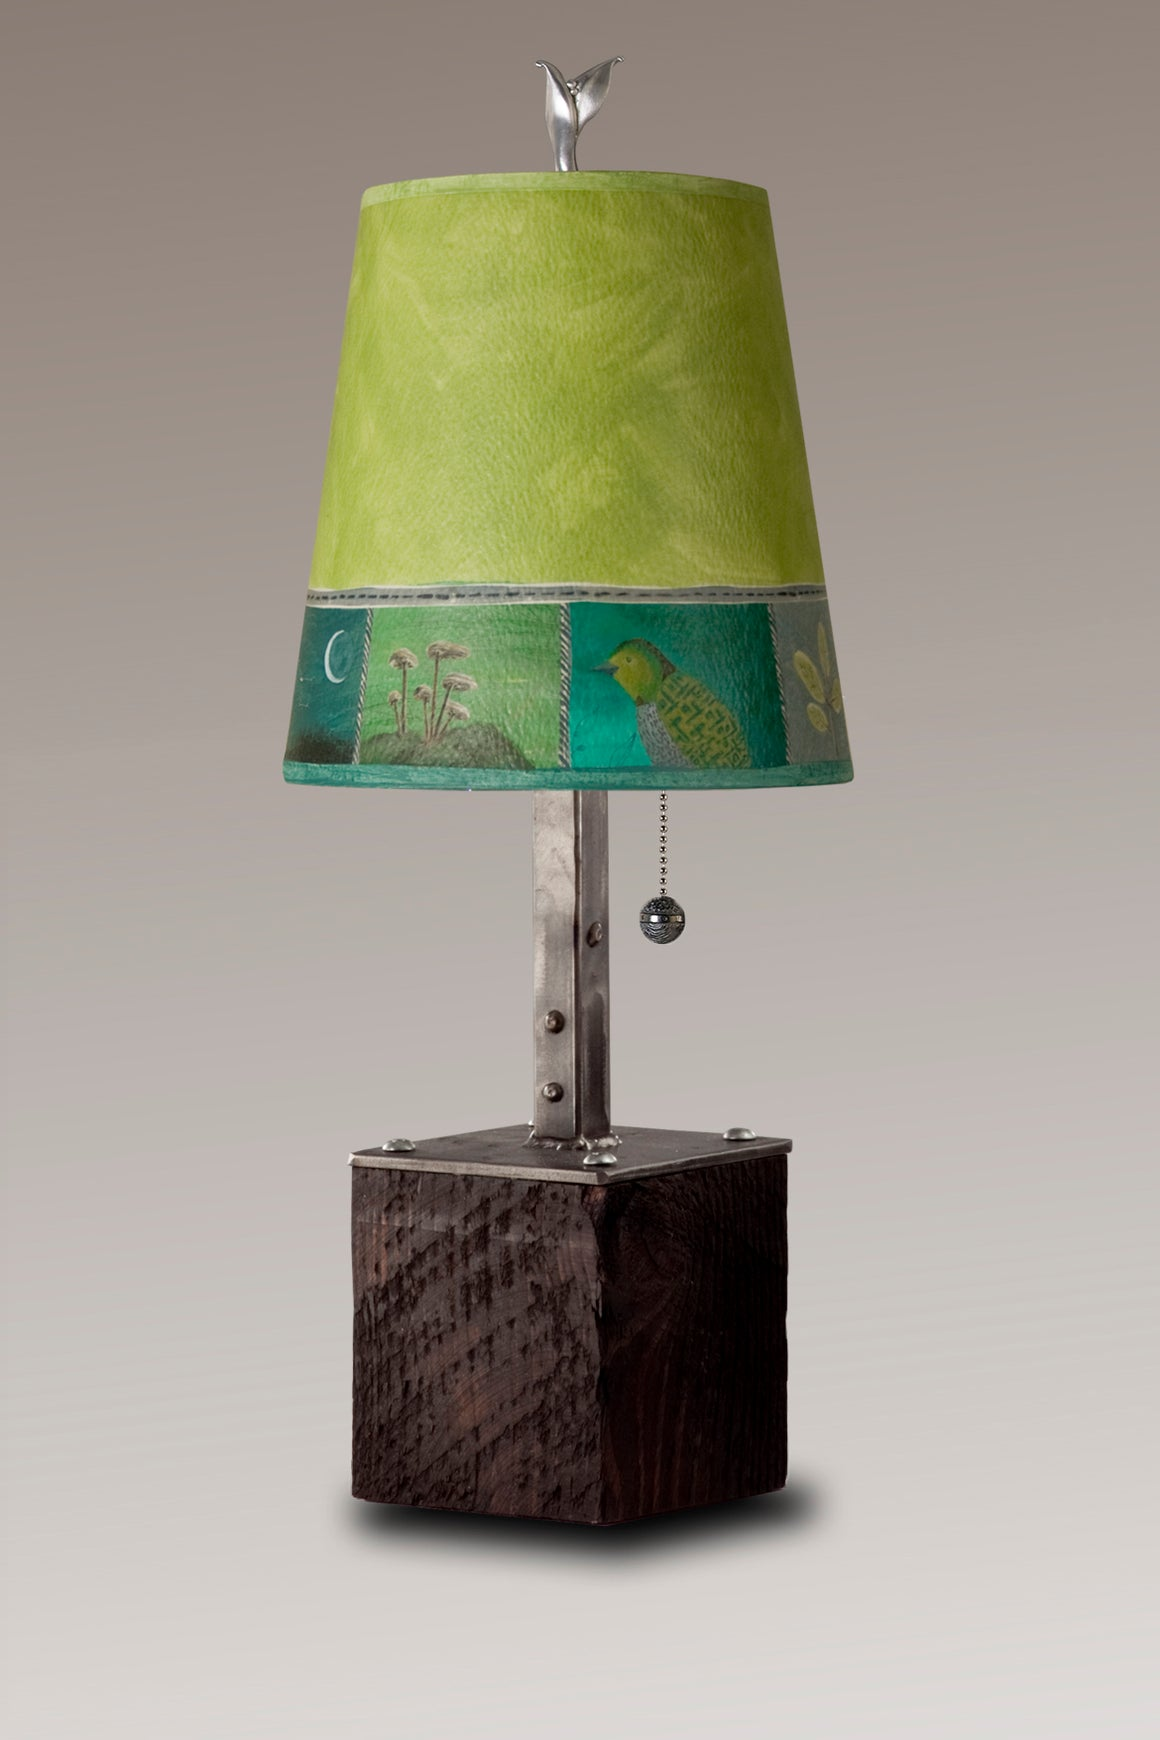 Steel Table Lamp on Reclaimed Wood with Small Drum Shade in Woodland Trails in Leaf